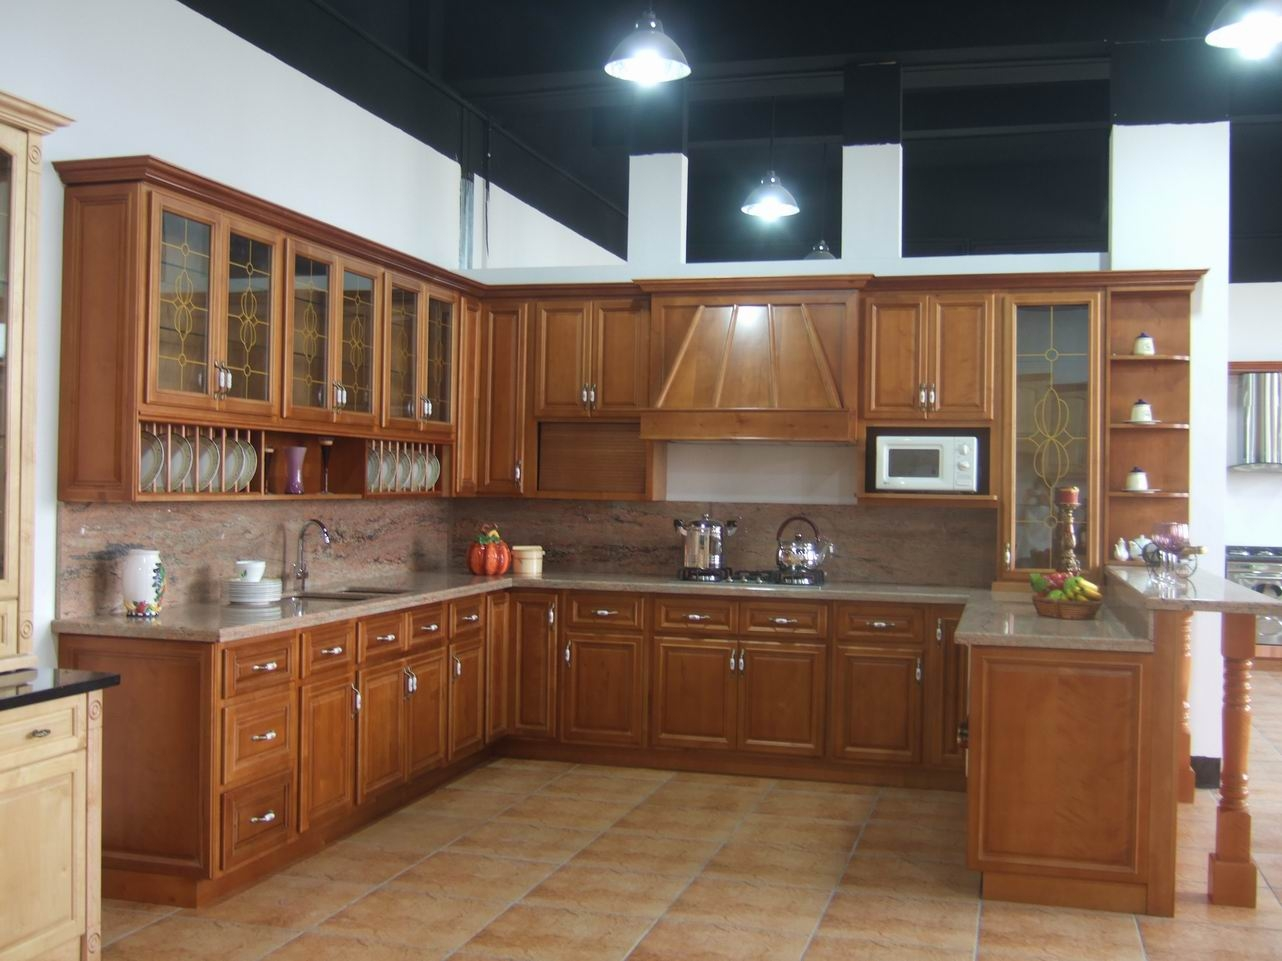 Design Of Kitchen Cabinets Pictures